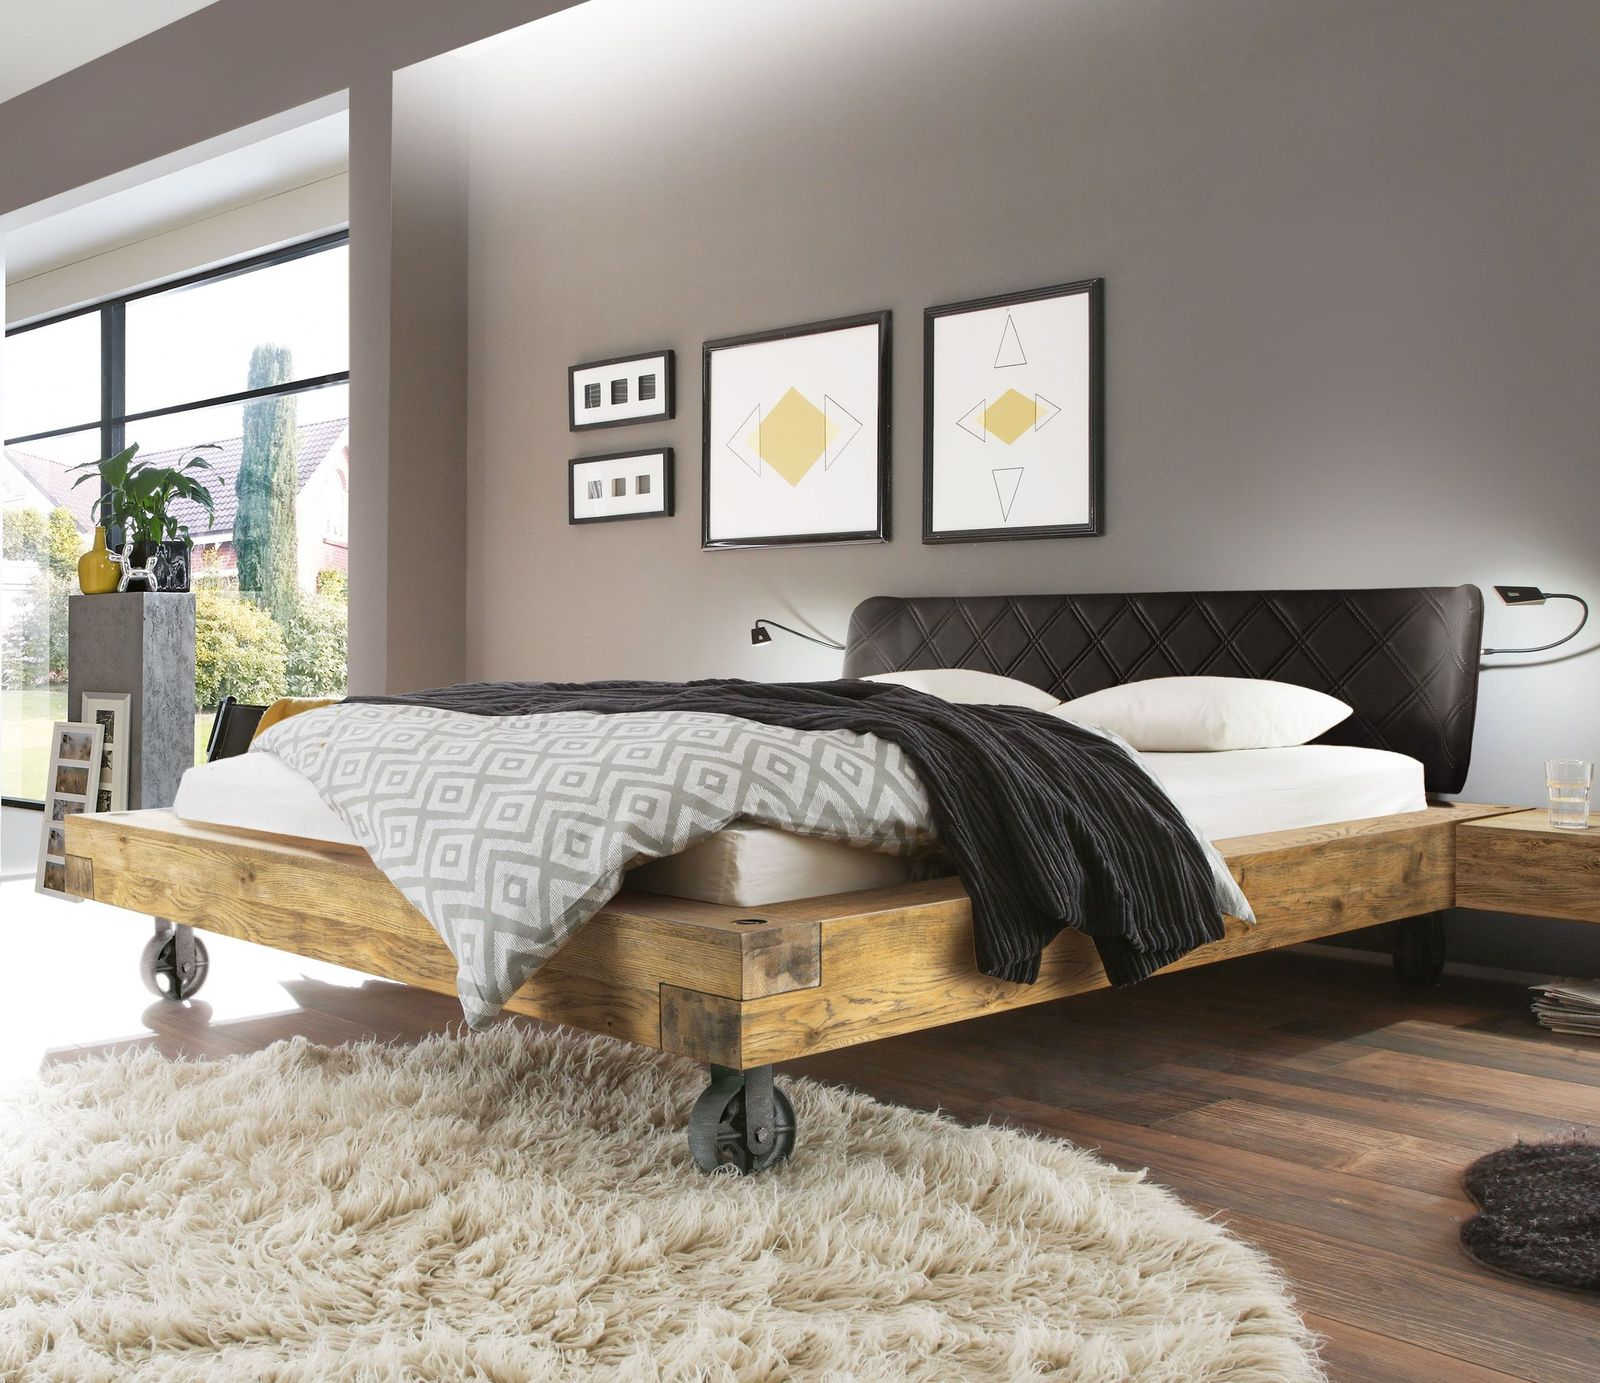 echtholz bett aus wildeiche balkenoptik industrial style. Black Bedroom Furniture Sets. Home Design Ideas